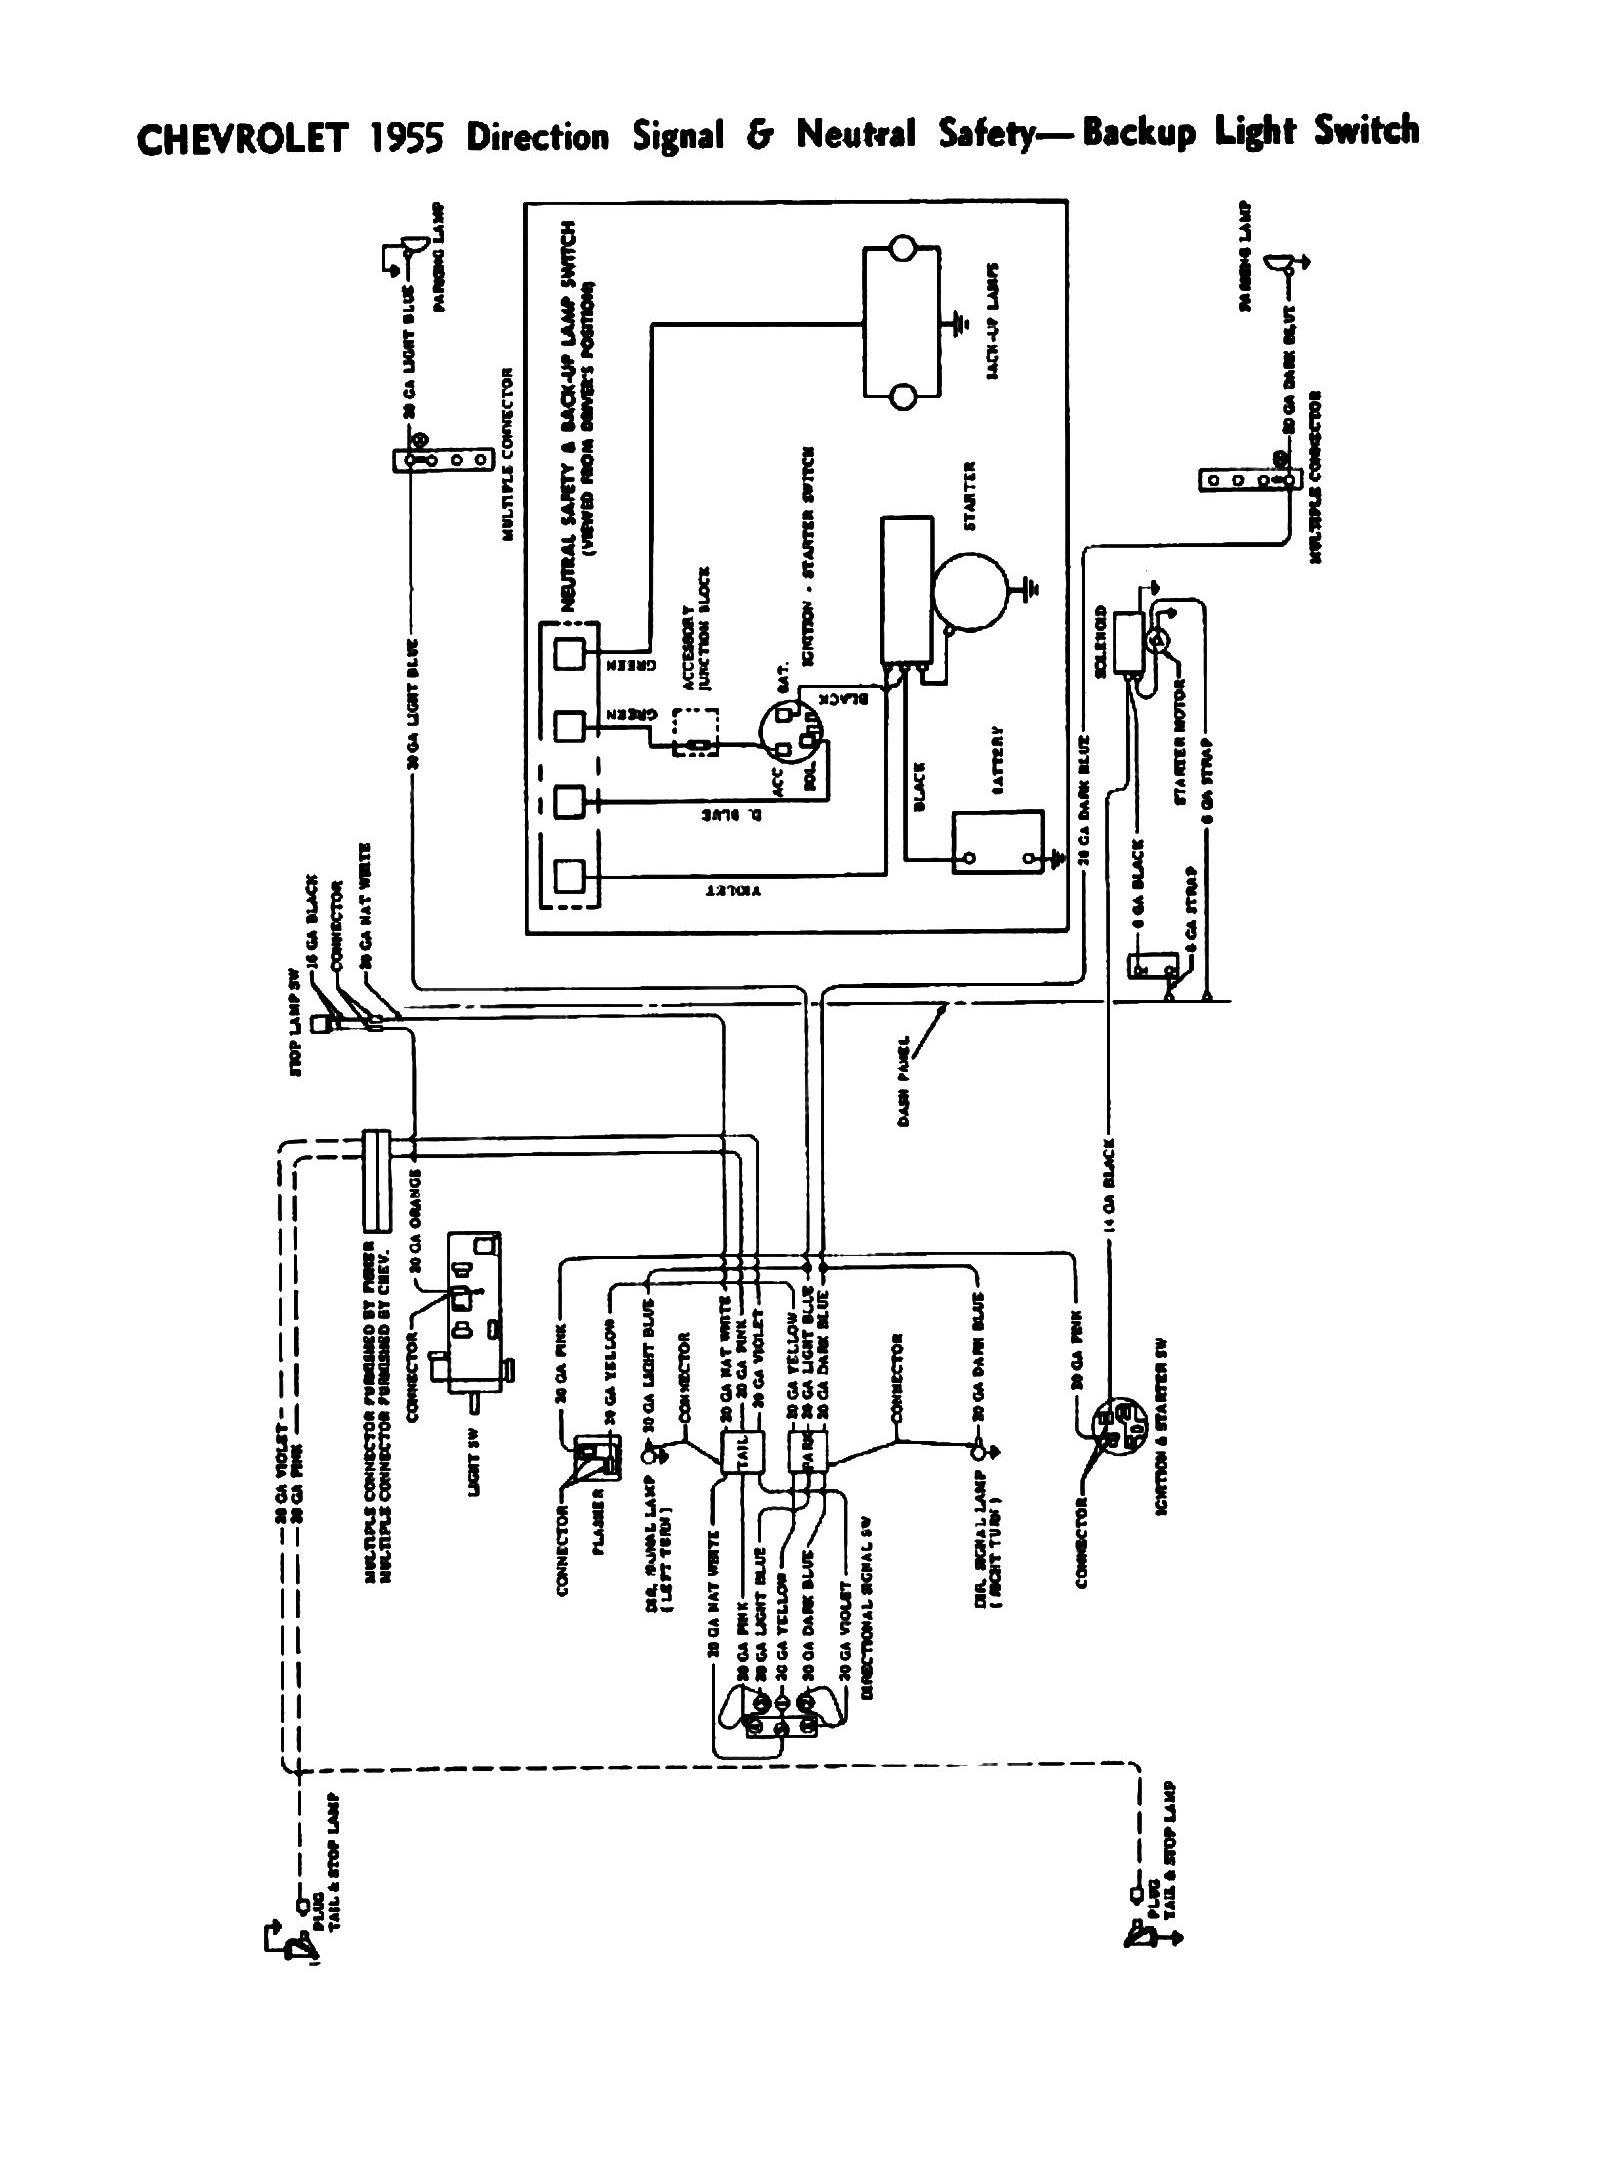 hight resolution of chevy starter wiring diagram wiring diagram for chevy starter motor save chevy wiring diagrams 17g